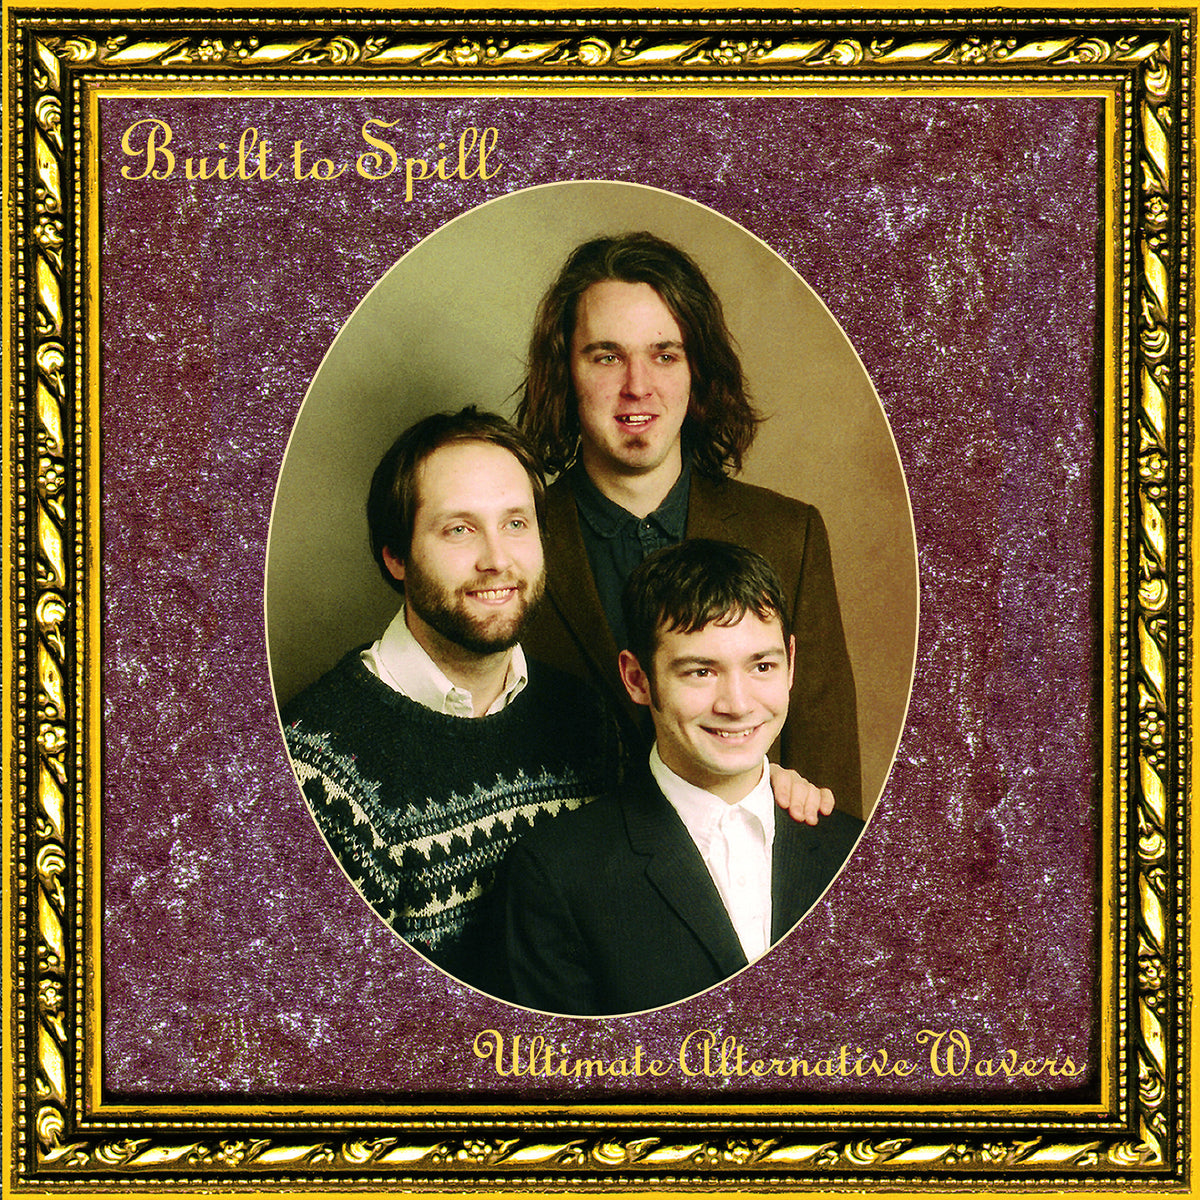 Built To Spill: Ultimate Alternative Wavers Vinyl LP (Record Store Day 2014)